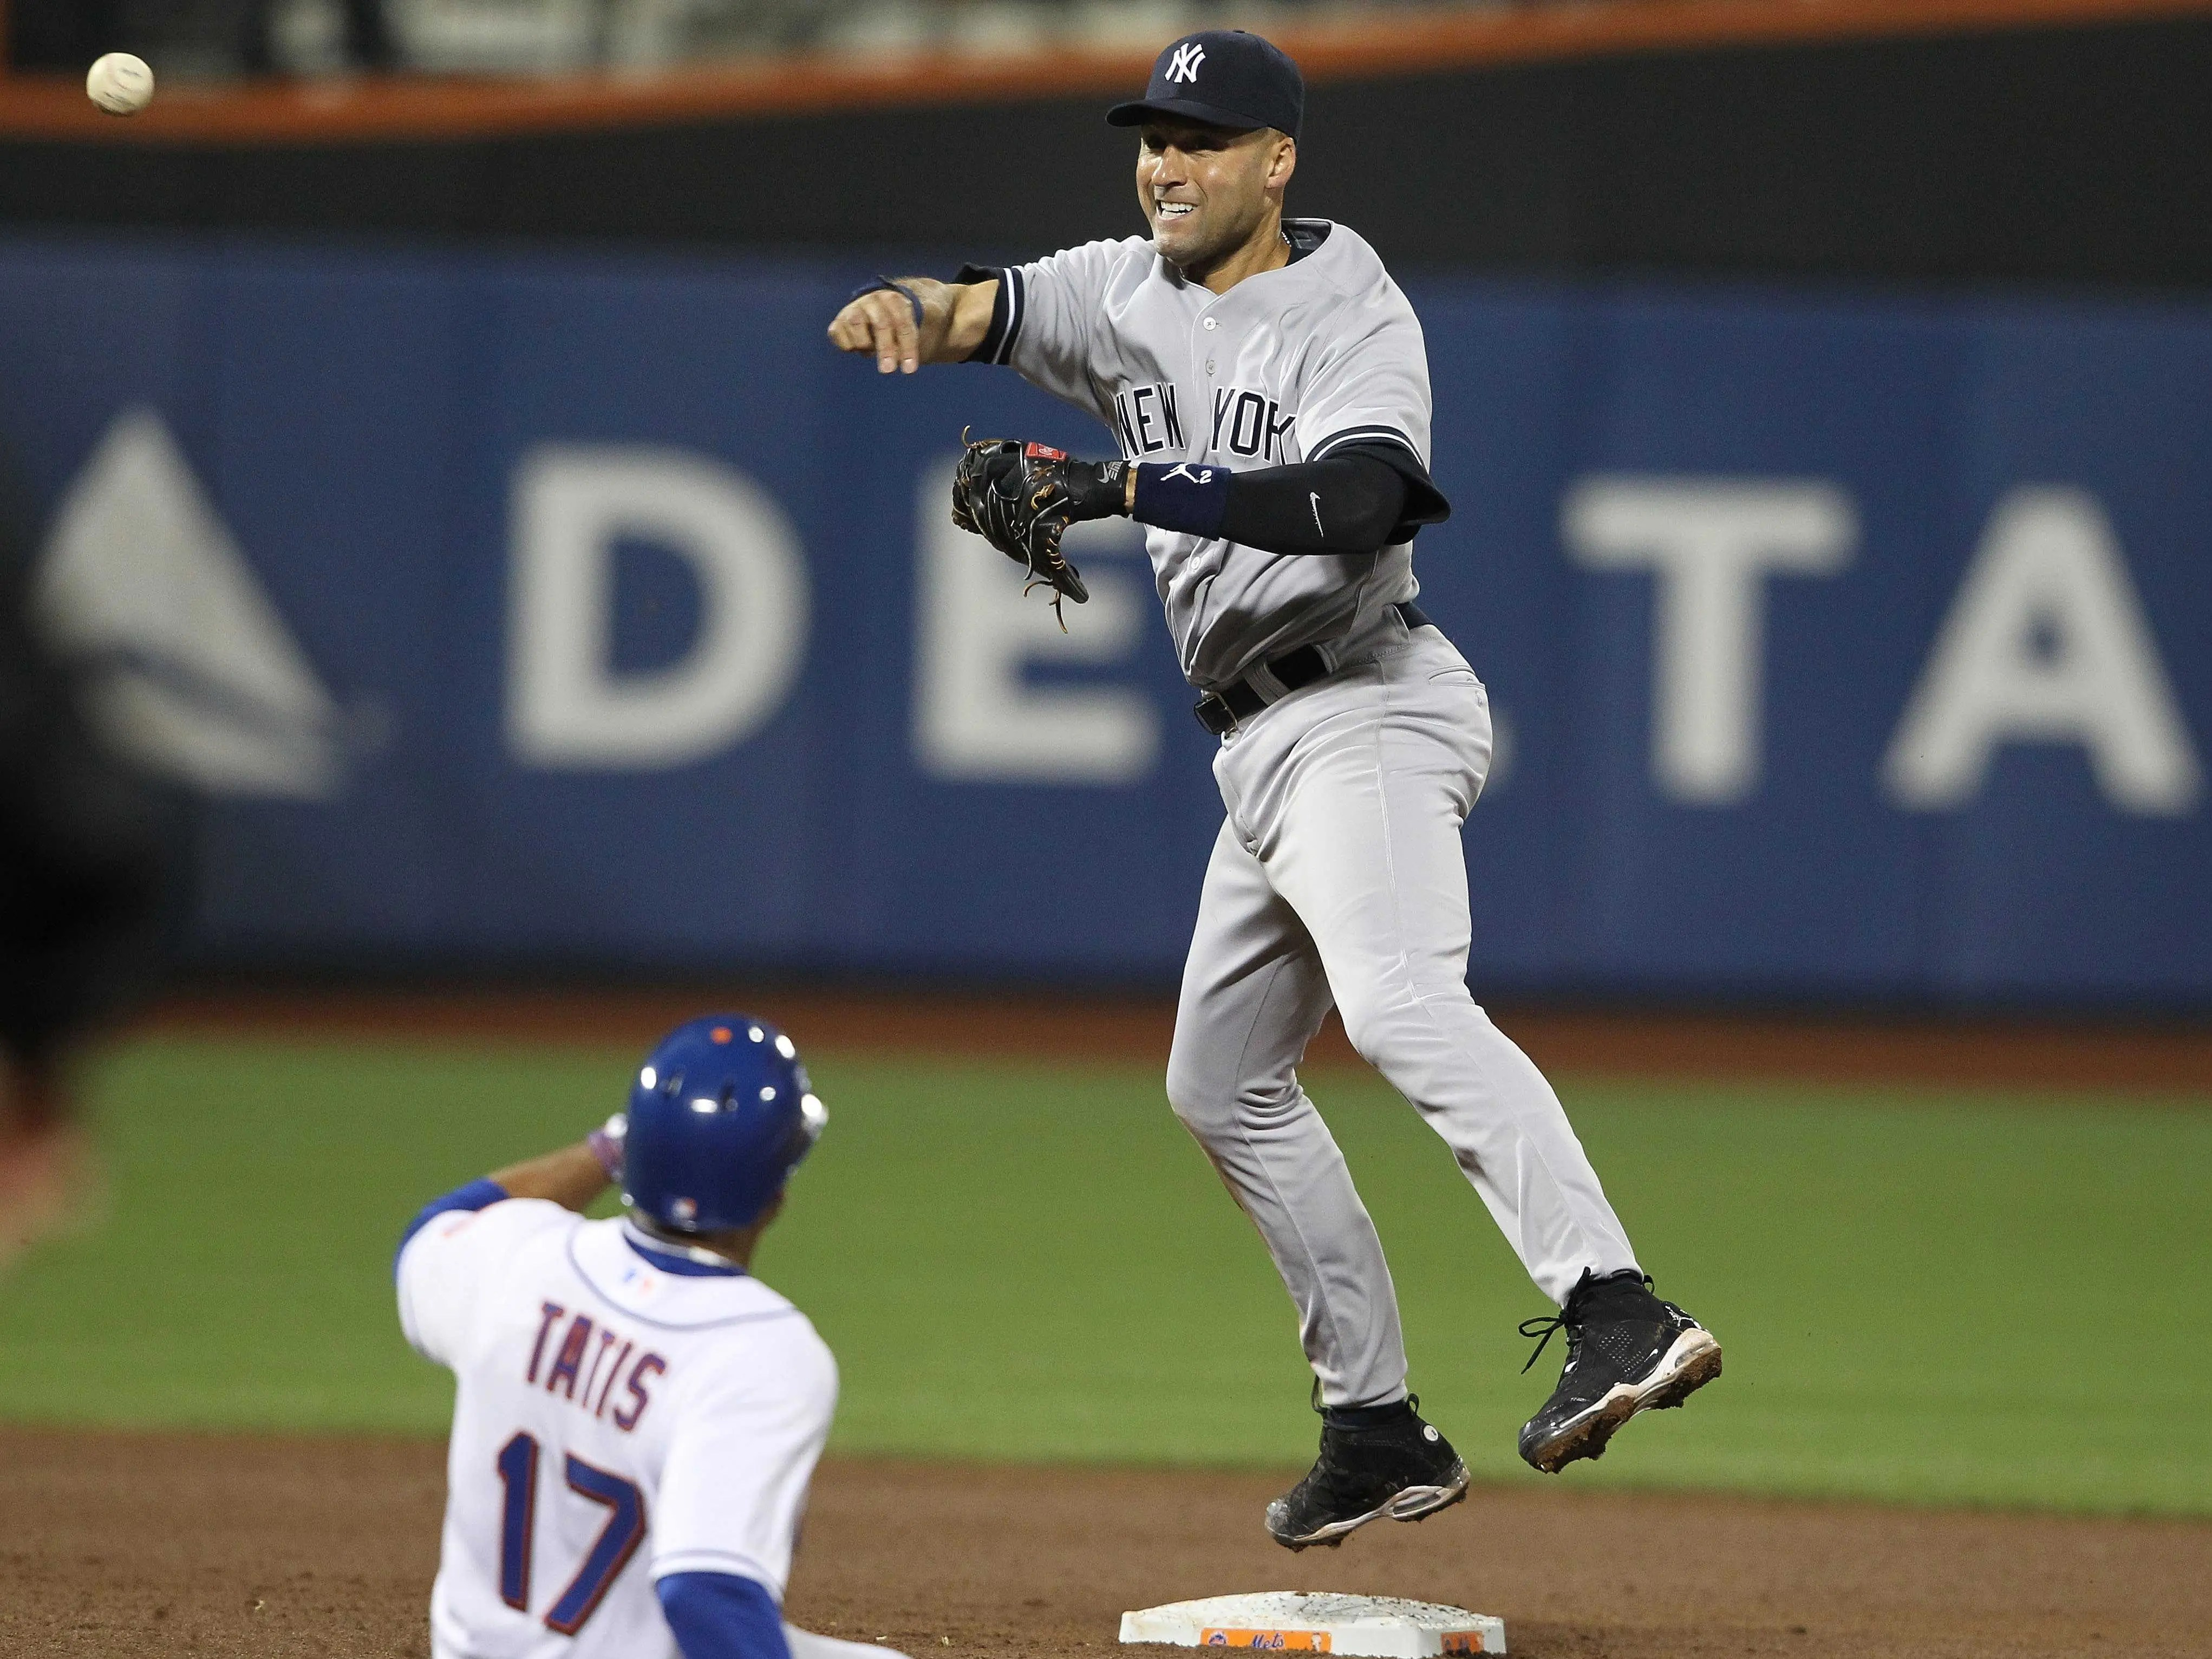 #10 Derek Jeter, New York Yankees